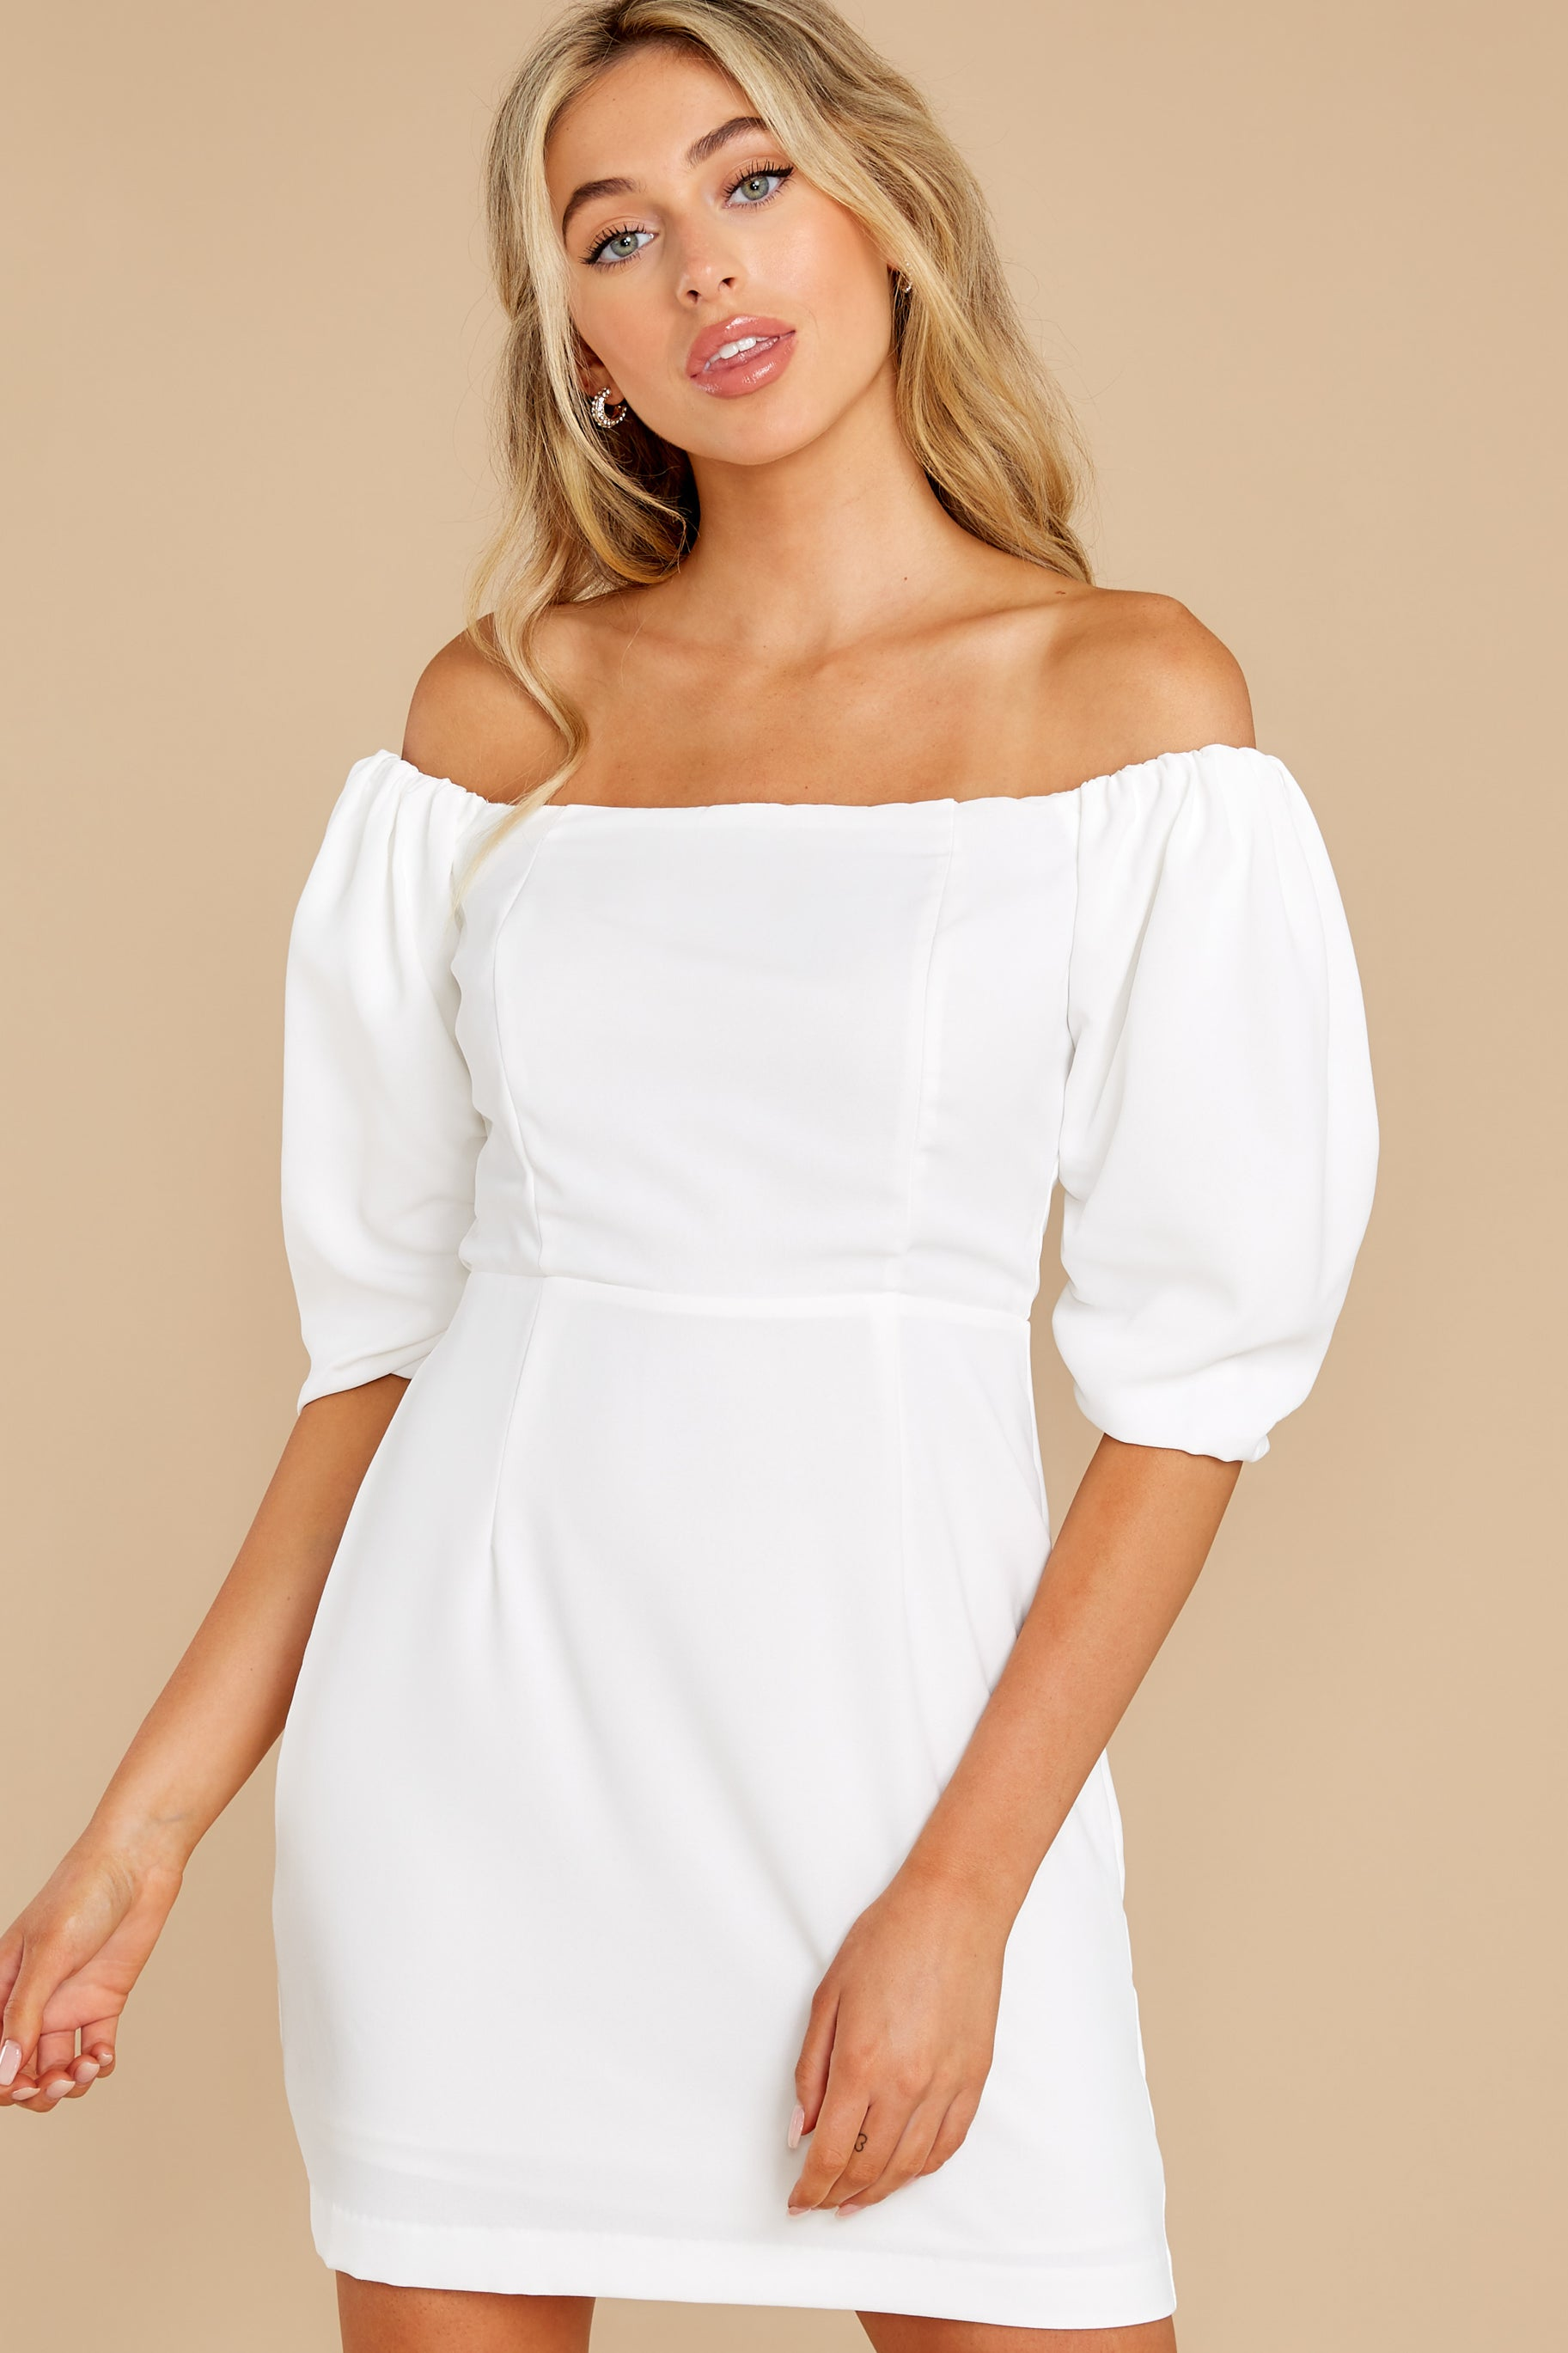 5 Lofty Ambitions White Off The Shoulder Dress at reddress.com